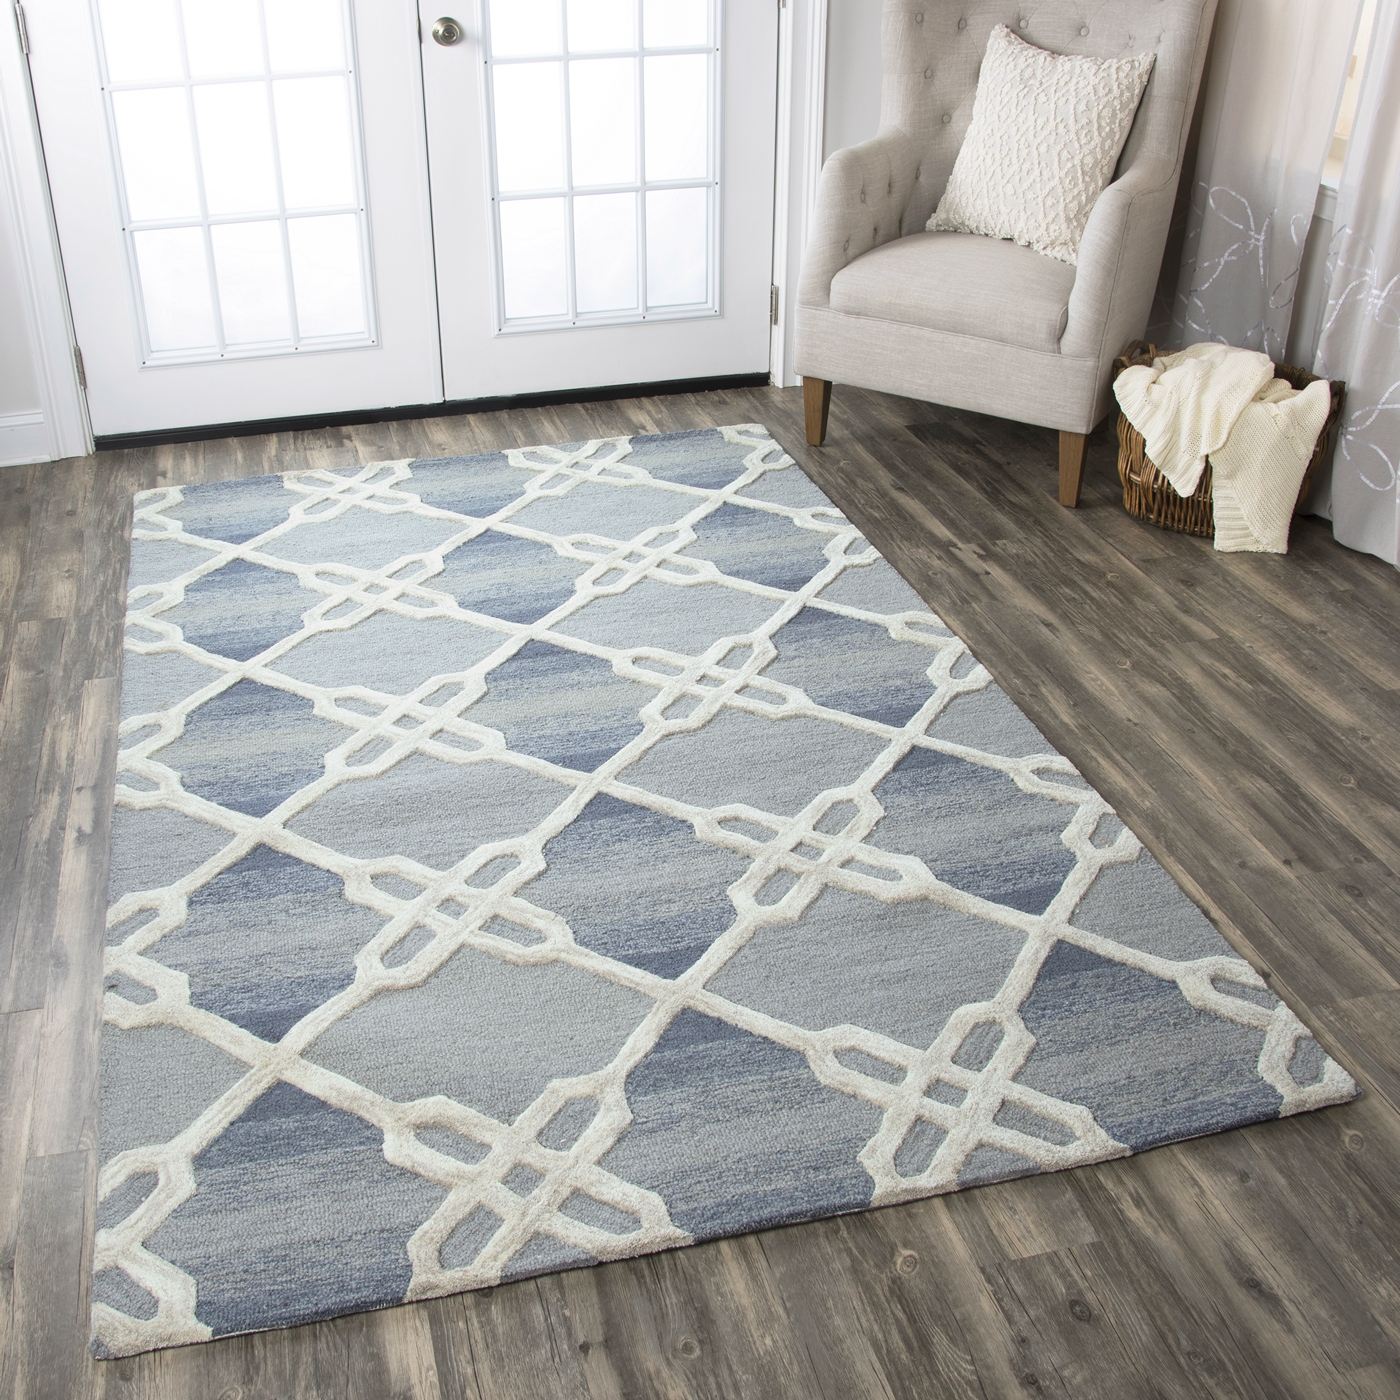 Royal Blue And White Trellis Rug: Caterine Gradient Diamond Wool Area Rug In Blue & Off